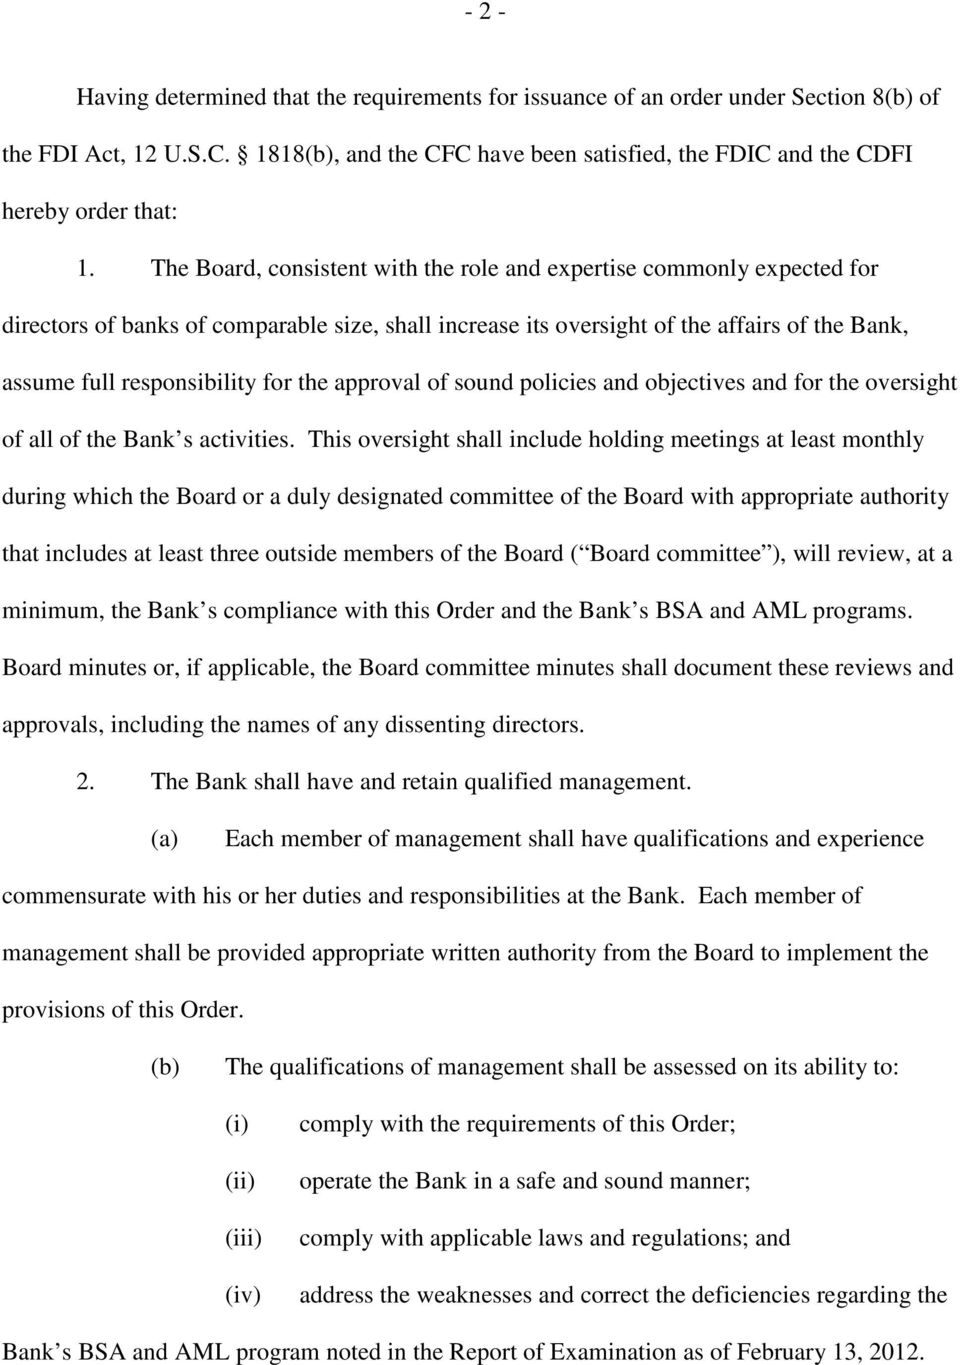 The Board, consistent with the role and expertise commonly expected for directors of banks of comparable size, shall increase its oversight of the affairs of the Bank, assume full responsibility for